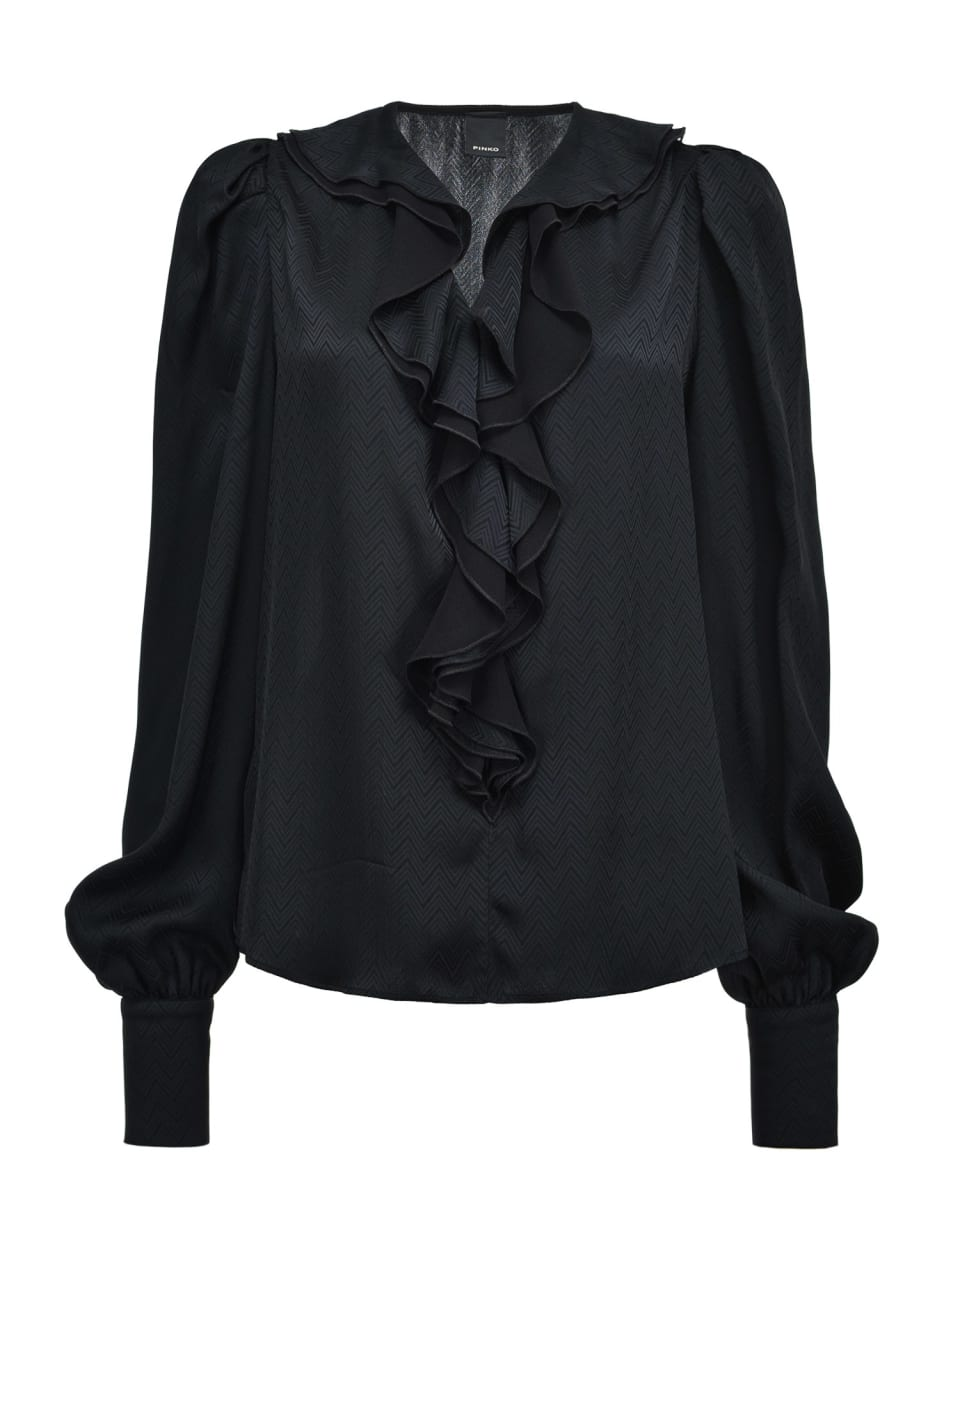 Supple chevron jacquard blouse with ruffles - Pinko